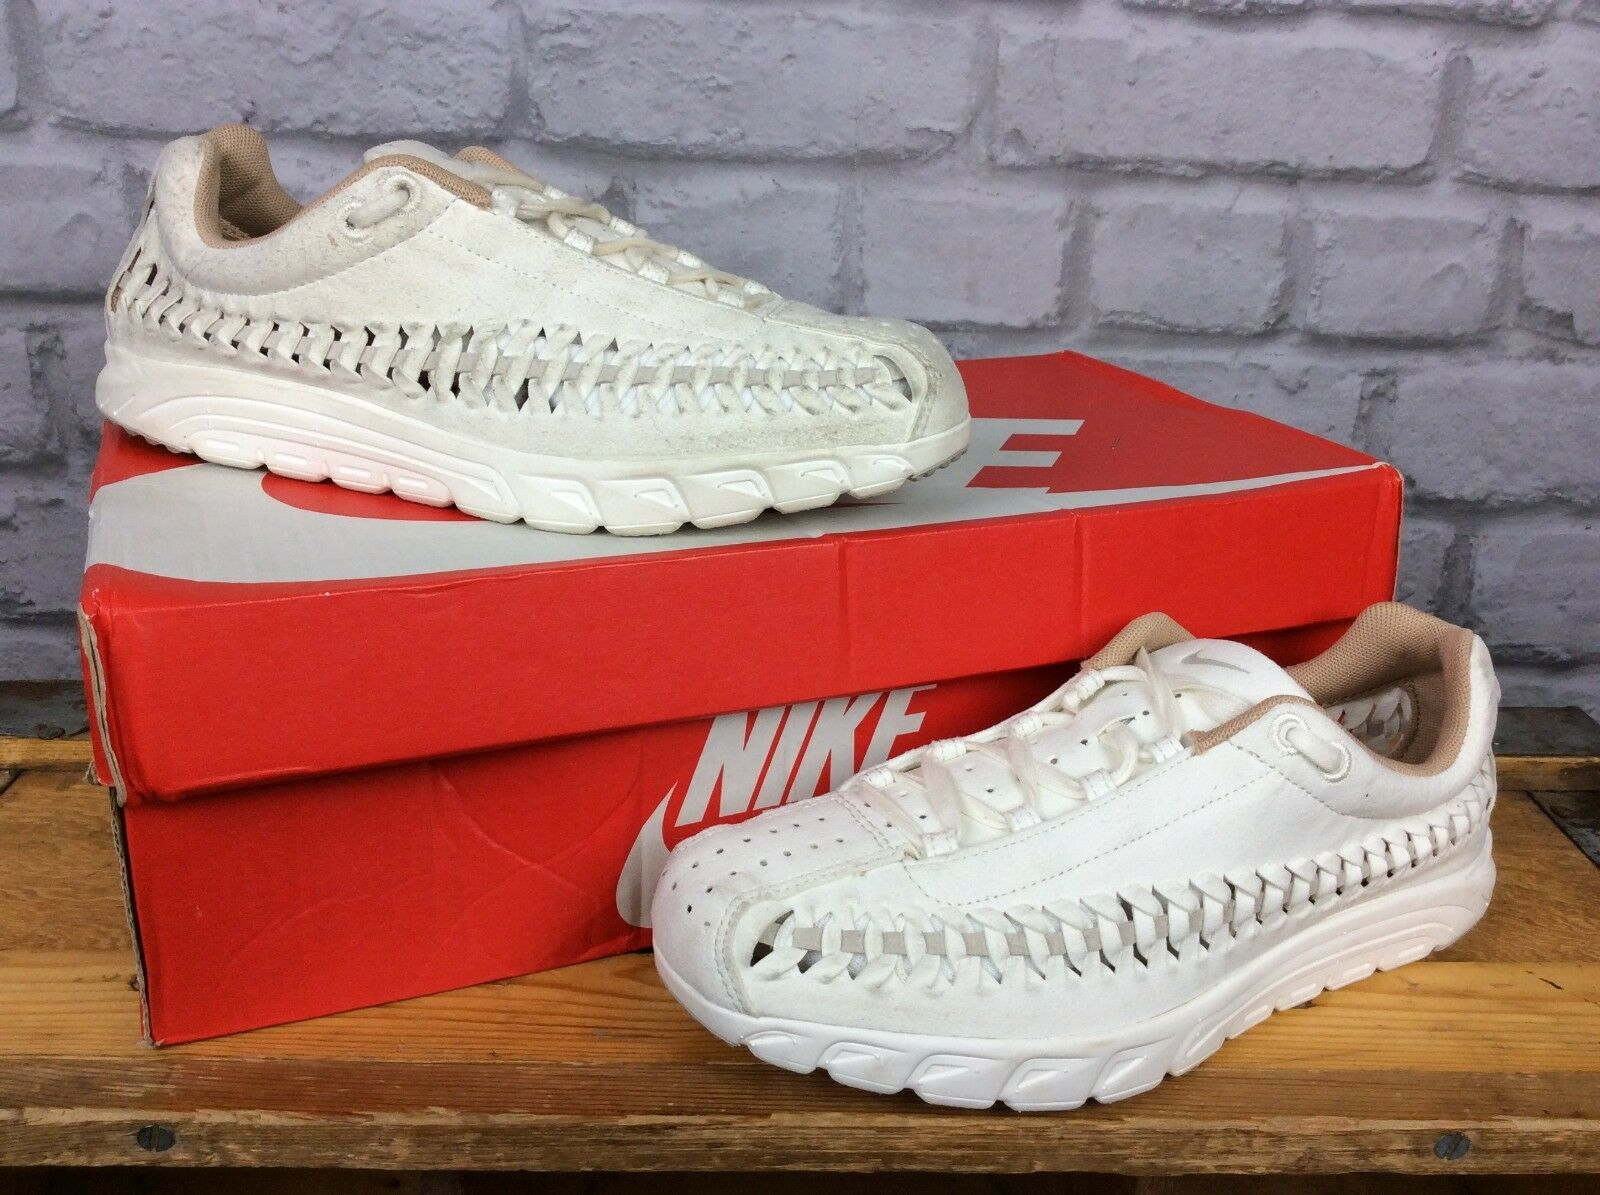 NIKE LADIES5 EU 38.5 NEUTRAL CREAM MAYFLY WOVEN SUEDE TRAINERS  95